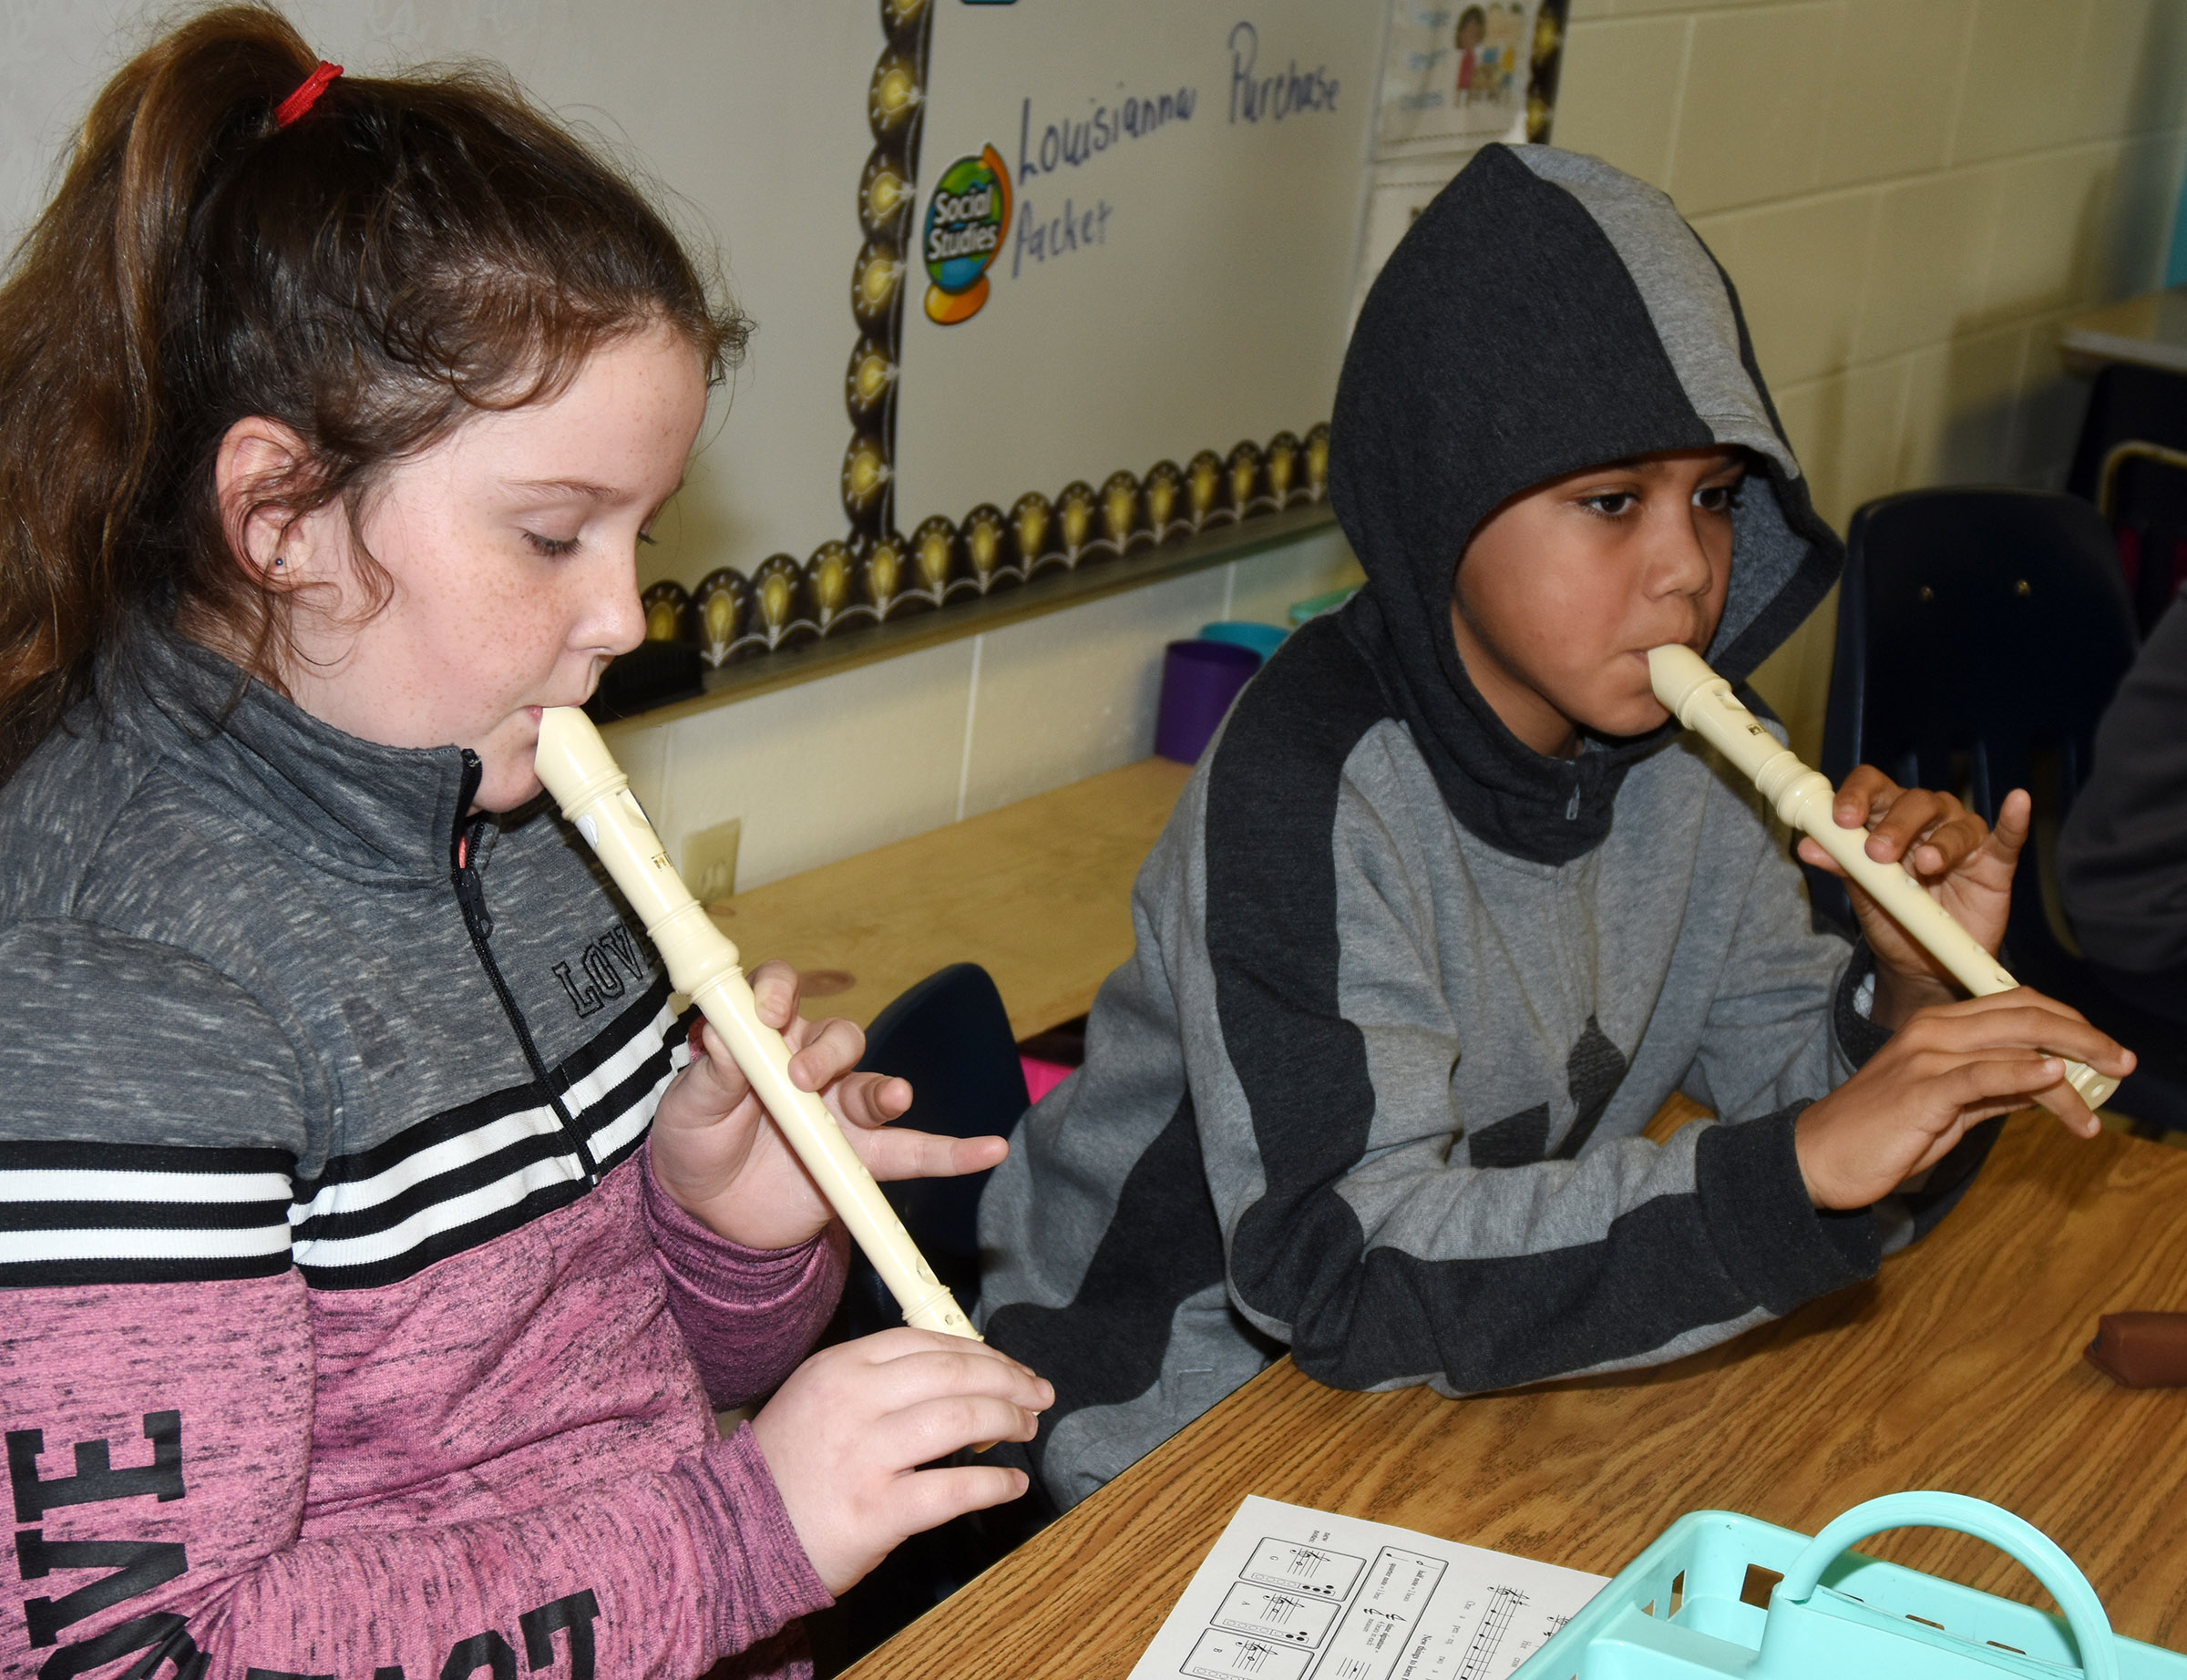 CES fourth-graders Madison Philpott, at left, and Christian Hart play Hot Cross Buns.